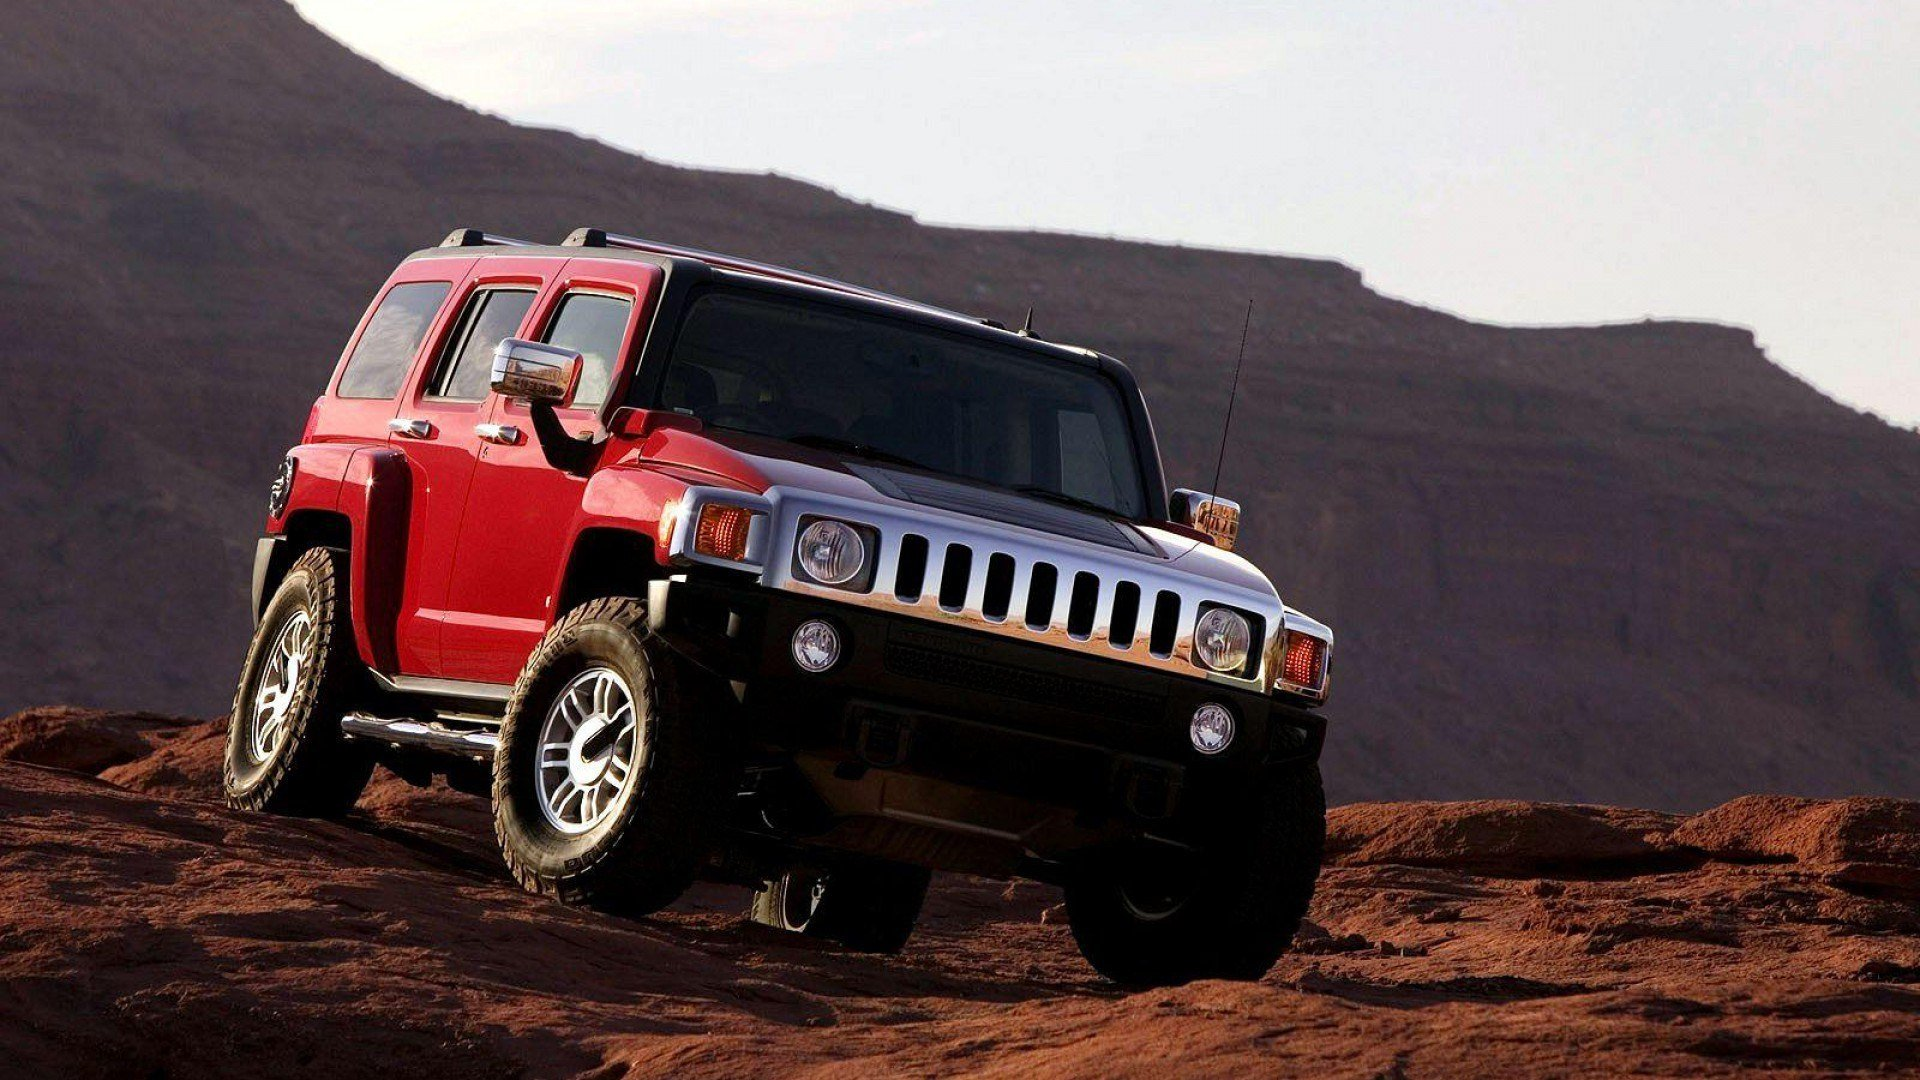 Latest Hummer Car Wallpapers 2018 ·① Free Download